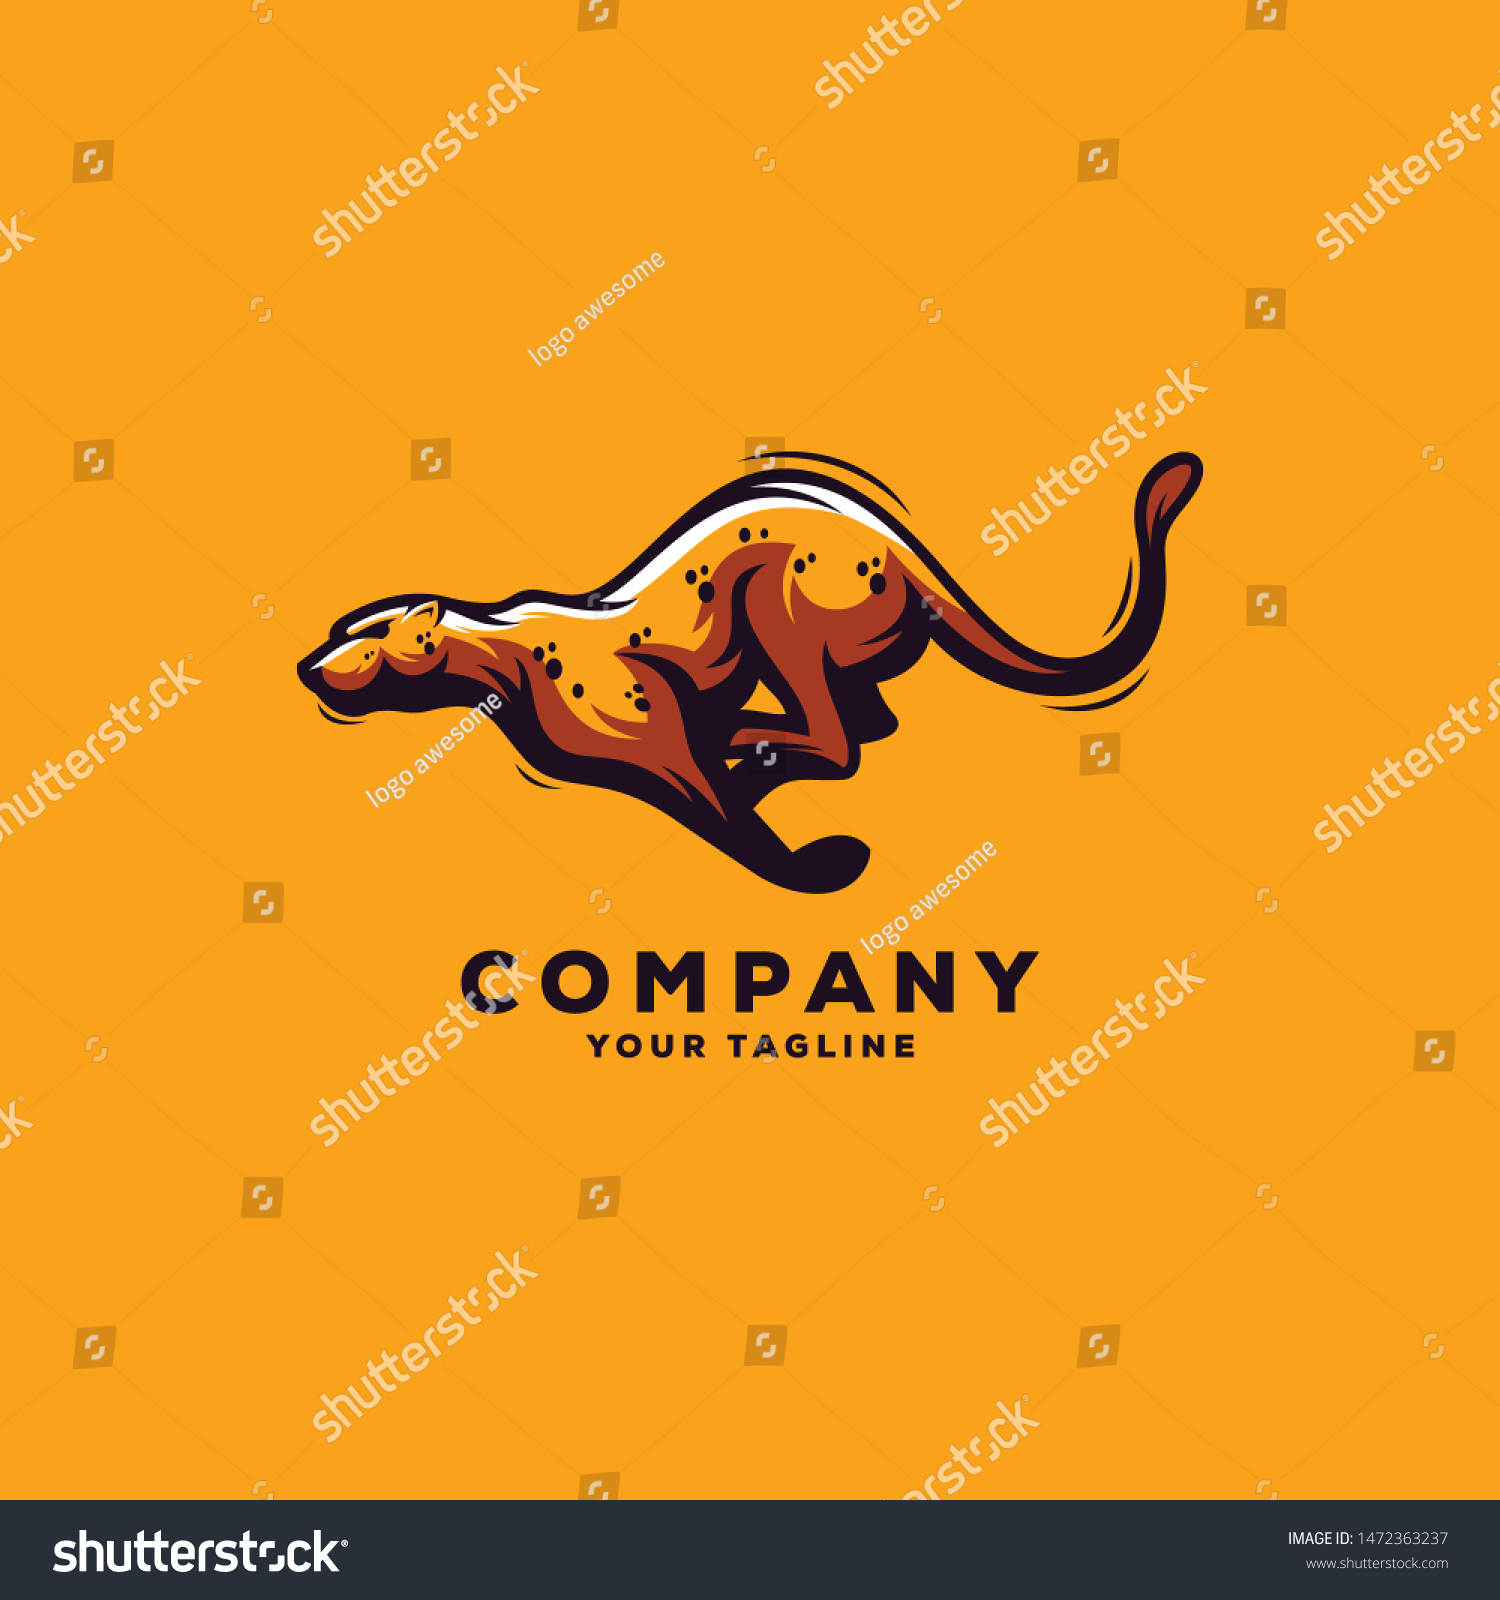 awesome running cheetah logo design stock vector royalty free 1472363237 https www shutterstock com image vector awesome running cheetah logo design 1472363237